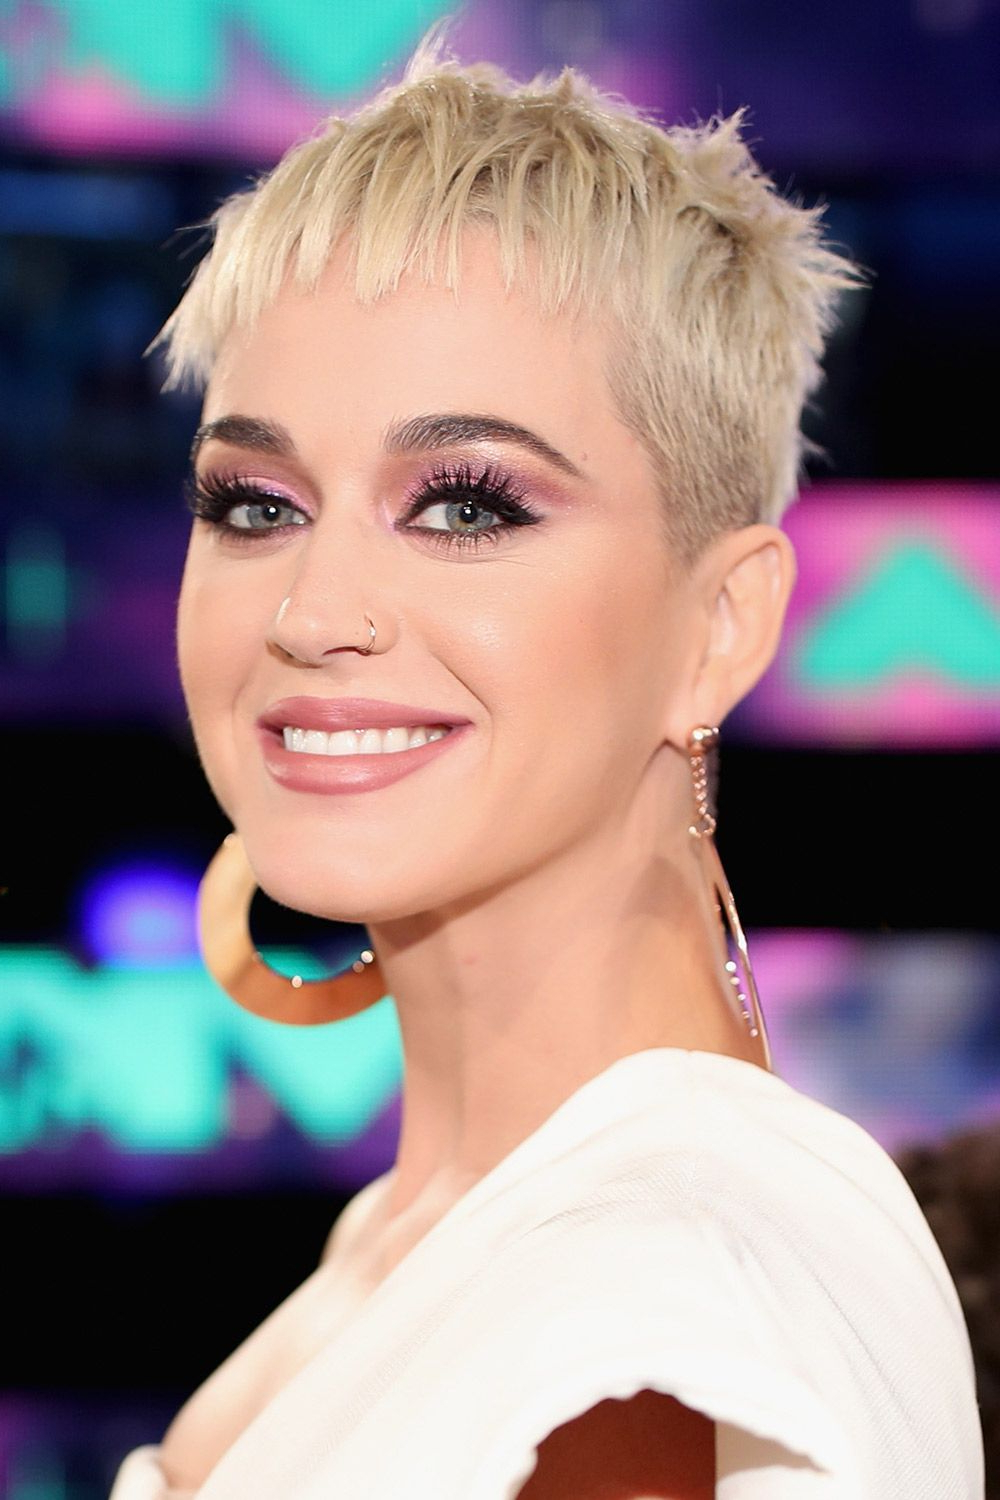 65 Best Short Hairstyles, Haircuts, And Short Hair Ideas For 2018 Regarding Short Hairstyles Swept Off The Face (Gallery 9 of 25)